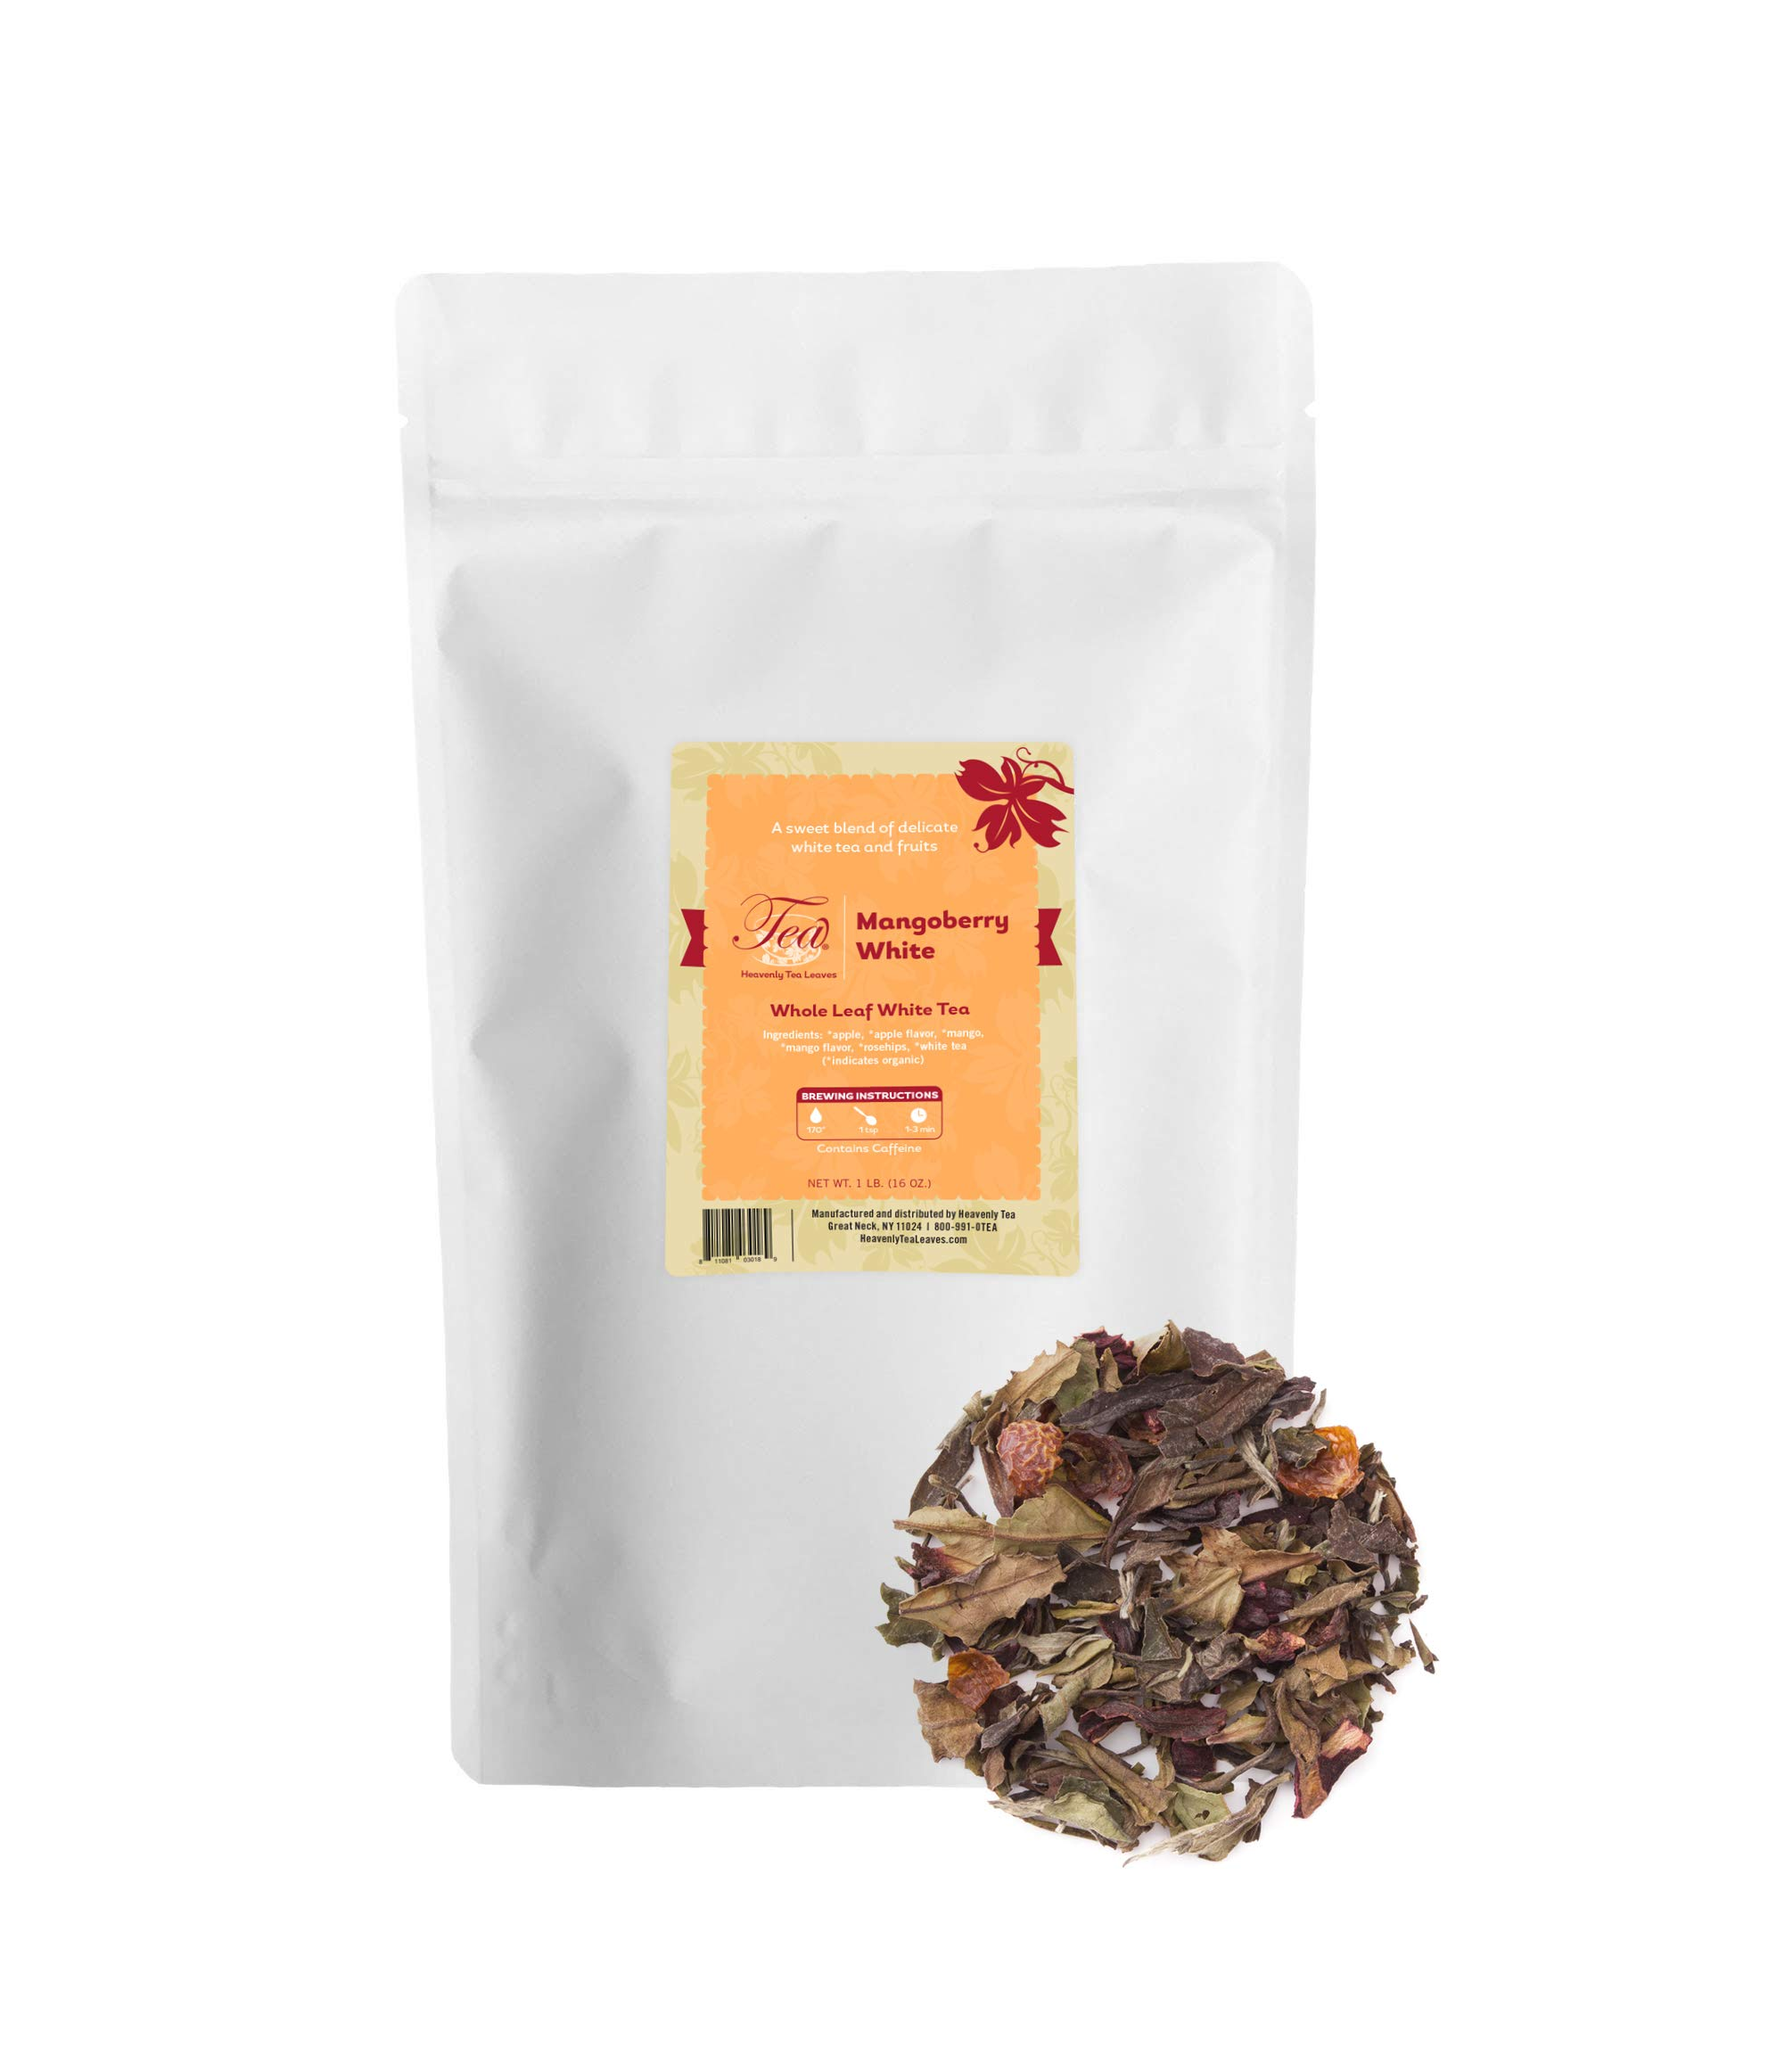 Heavenly Tea Leaves Mangoberry White Tea, Bulk Loose Leaf Tea, 16 Oz. Resealable Pouch by Heavenly Tea Leaves